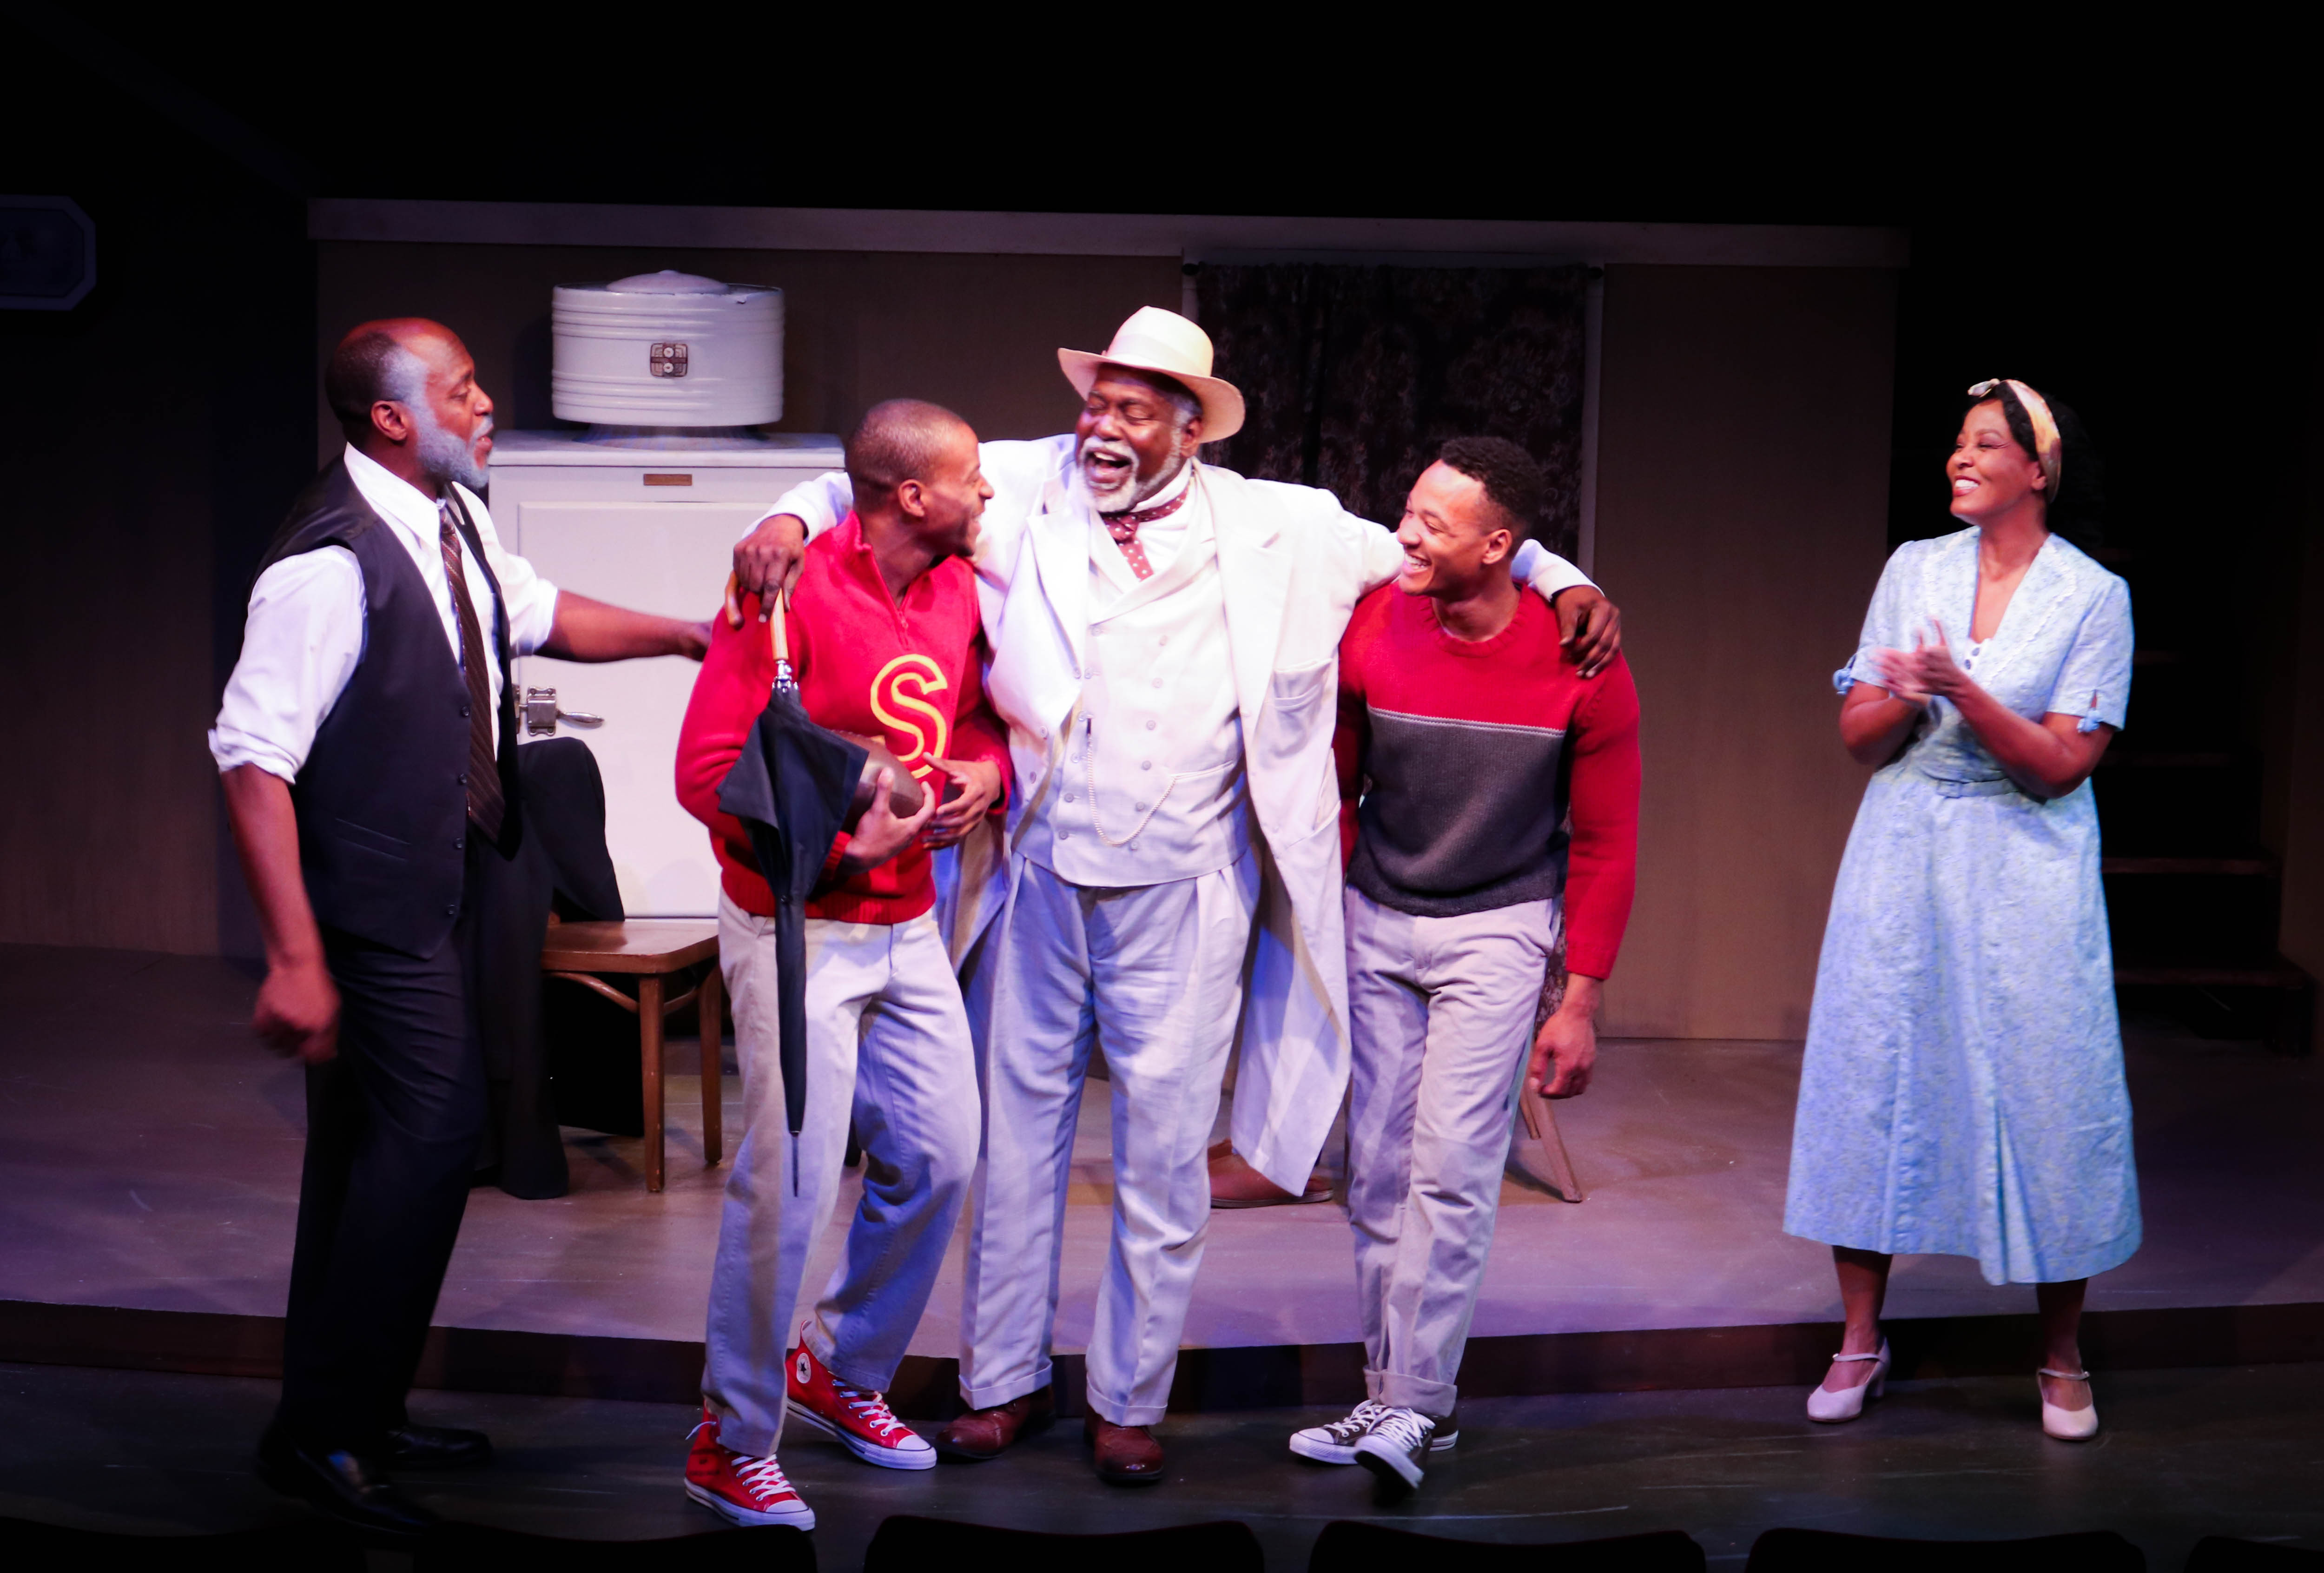 BWW Review: DEATH OF A SALESMAN is Unapologetic and Unafraid at Austin Playhouse